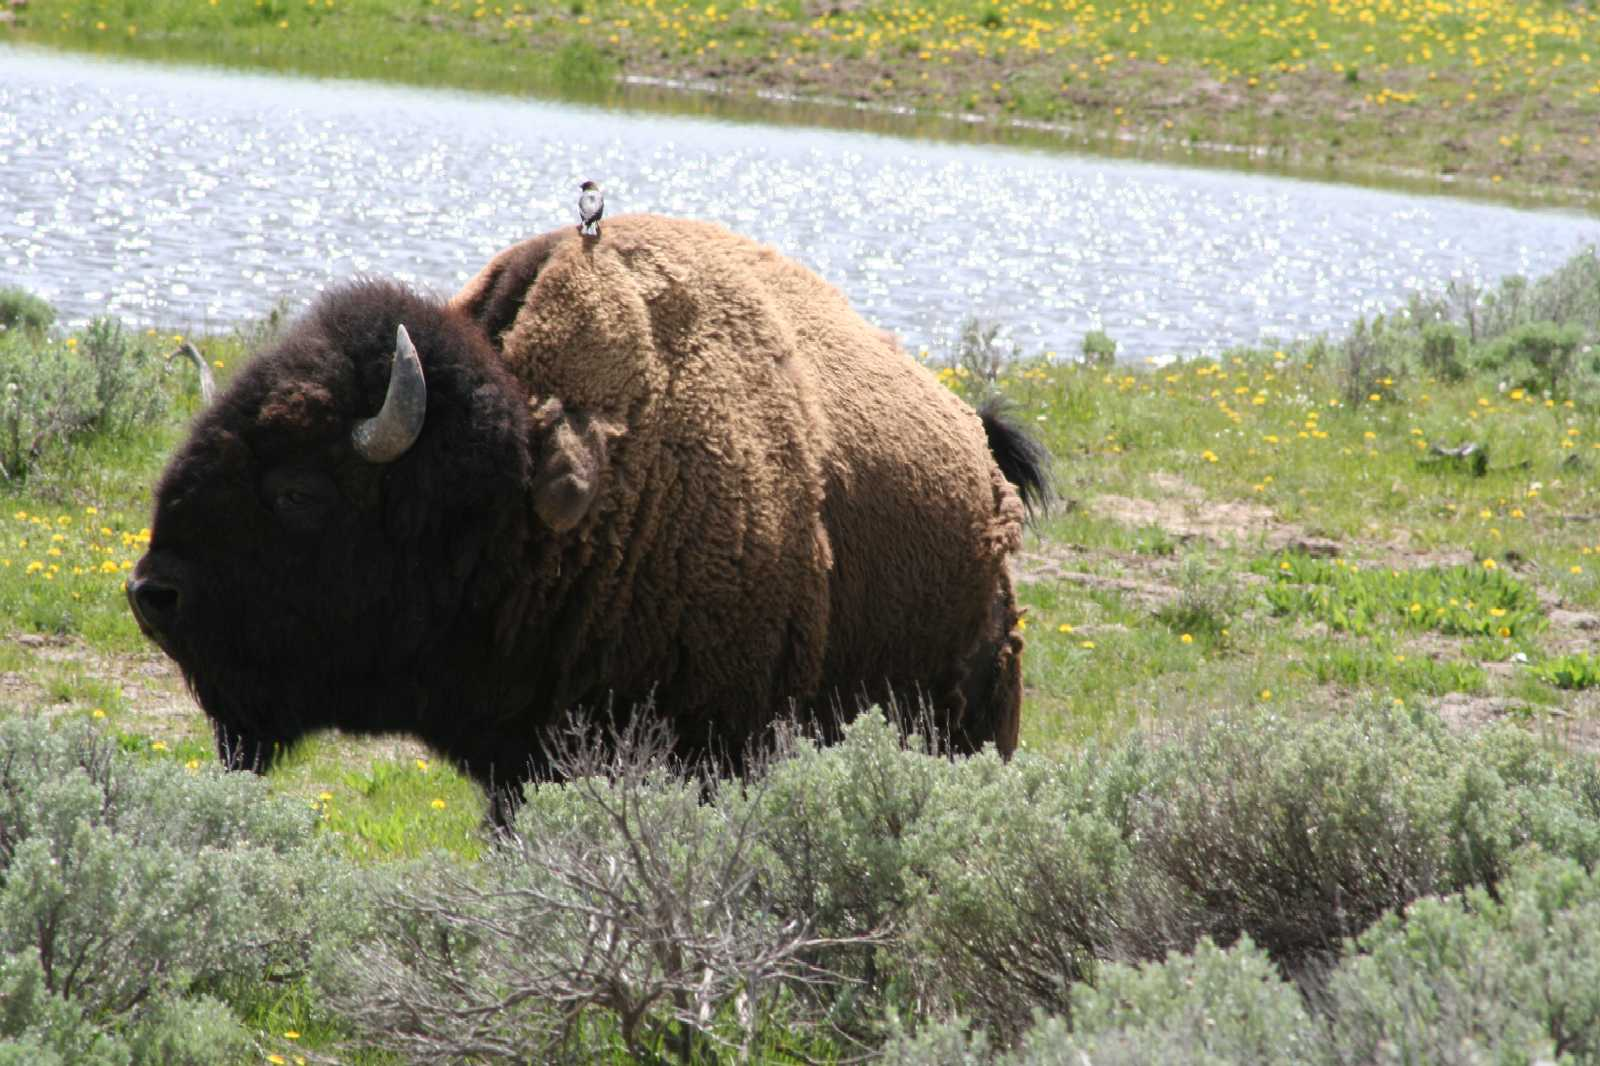 Click image for larger version  Name:Bison Bull Yellowstone National Park.jpg Views:138 Size:180.7 KB ID:71077